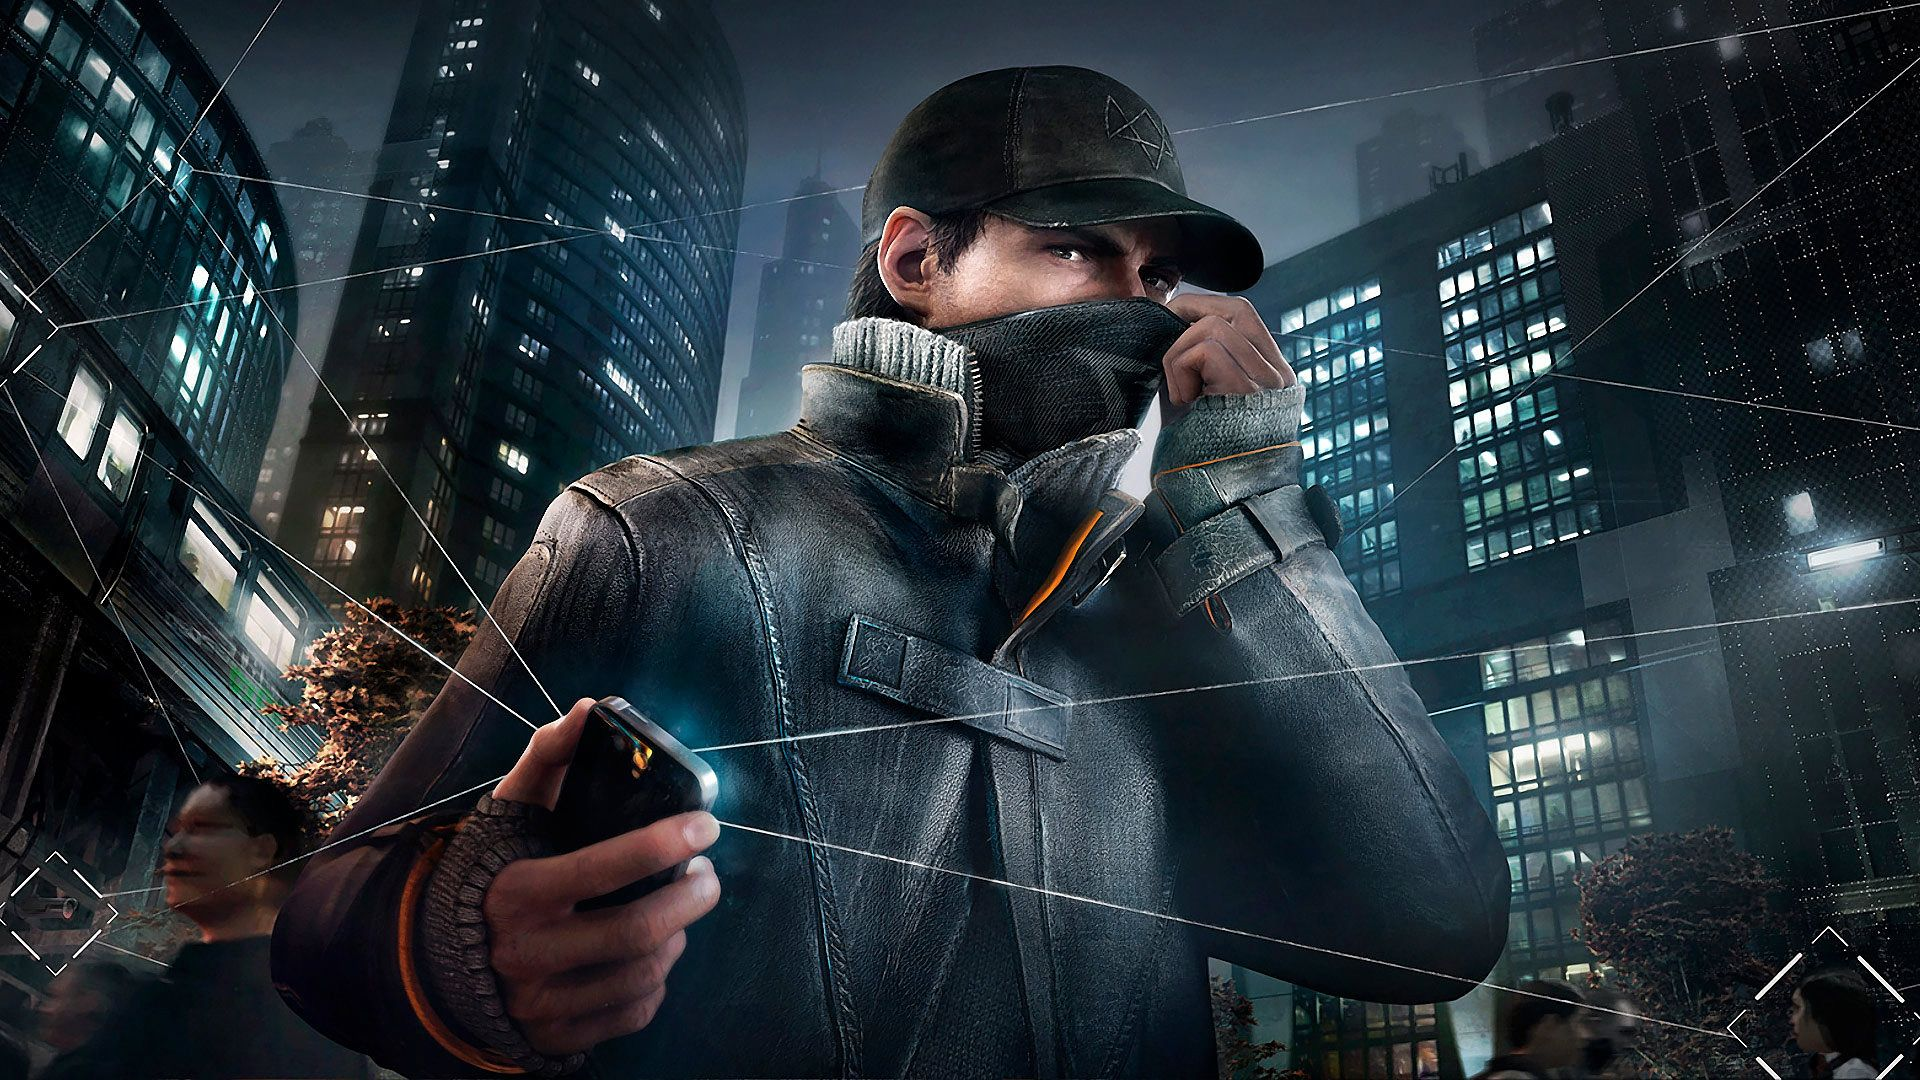 Watch Dogs Aiden Pearce Game Wallpaper Full Hd 1080p Watch Dogs